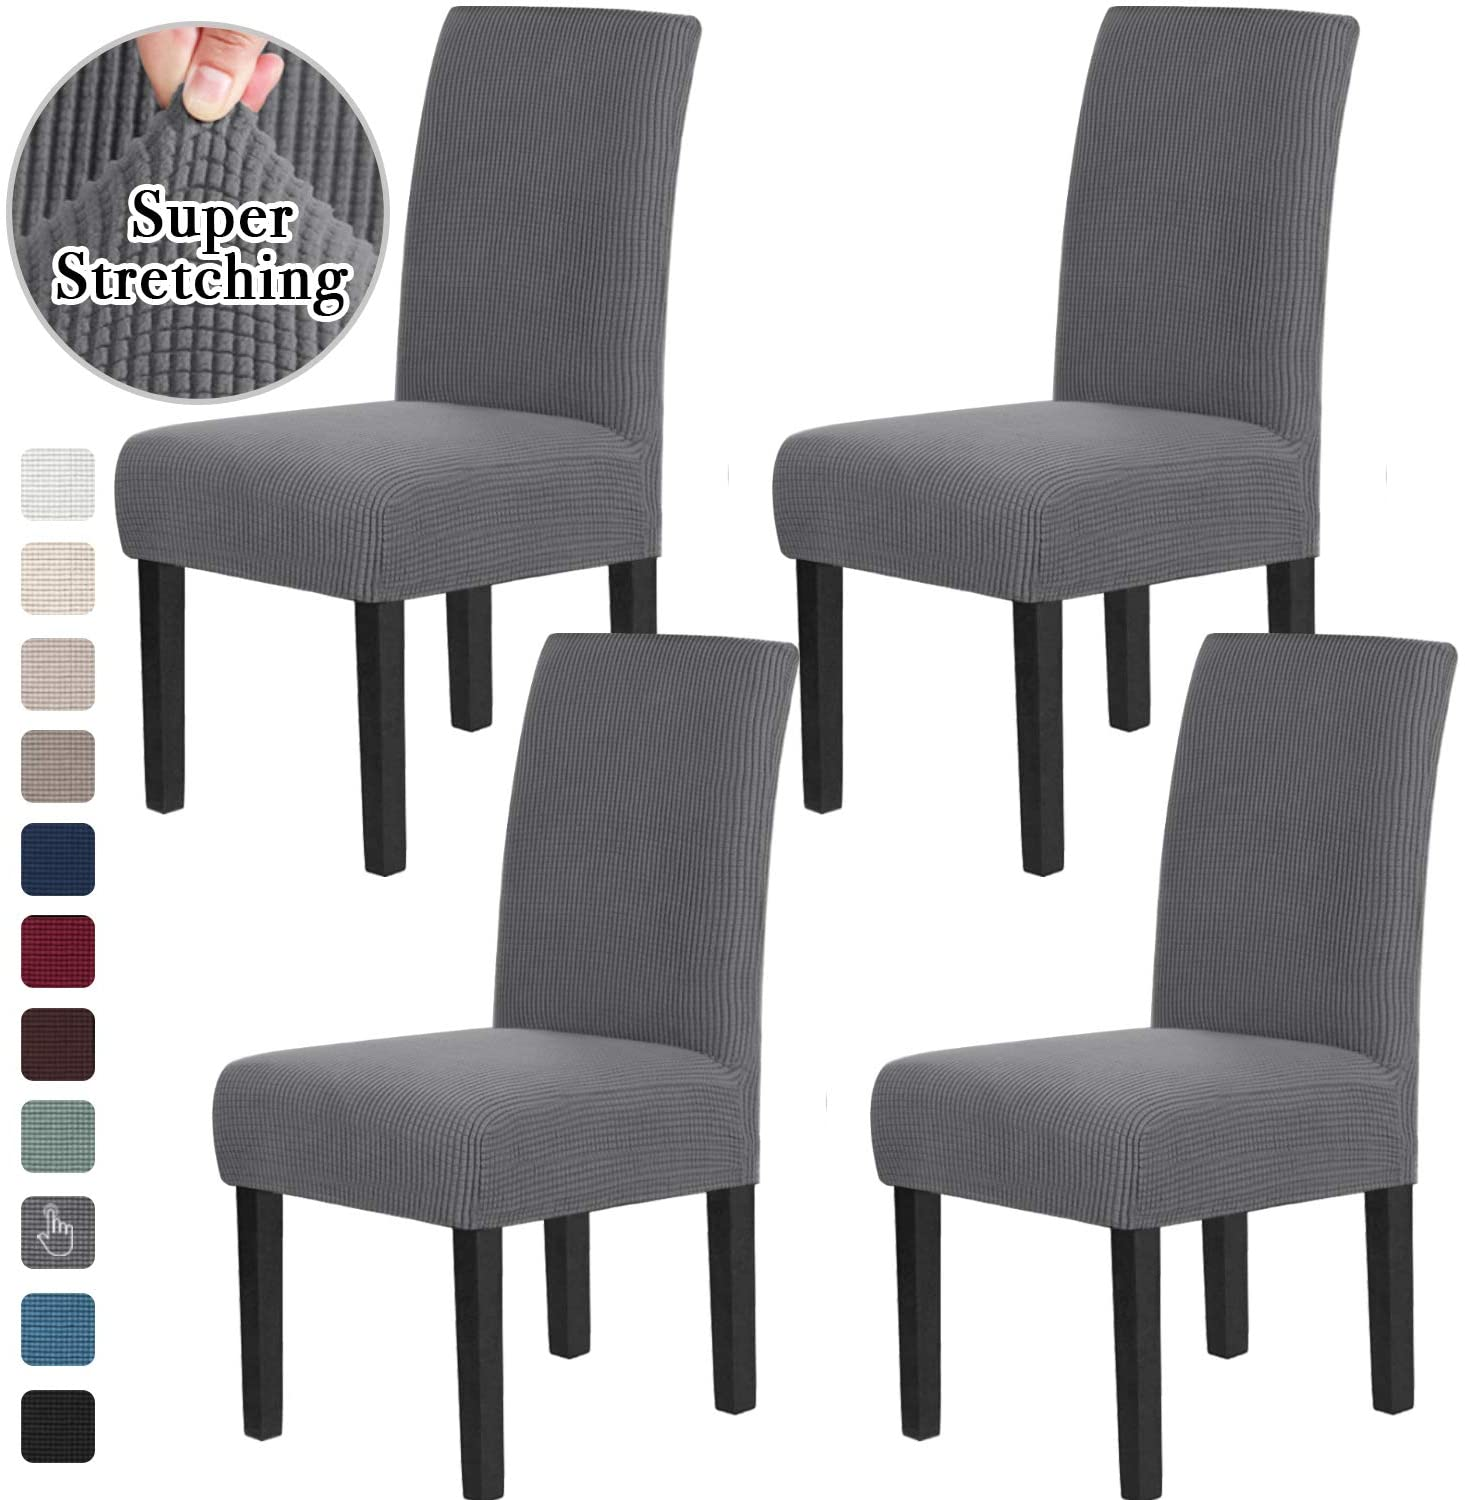 Chair Covers for Dining Room Stretch Dining Chair Covers Chair Cushions for Dining Chairs Super Fit Dining Chair Protector Removable Washable Chair Covers Set of 4, Gray